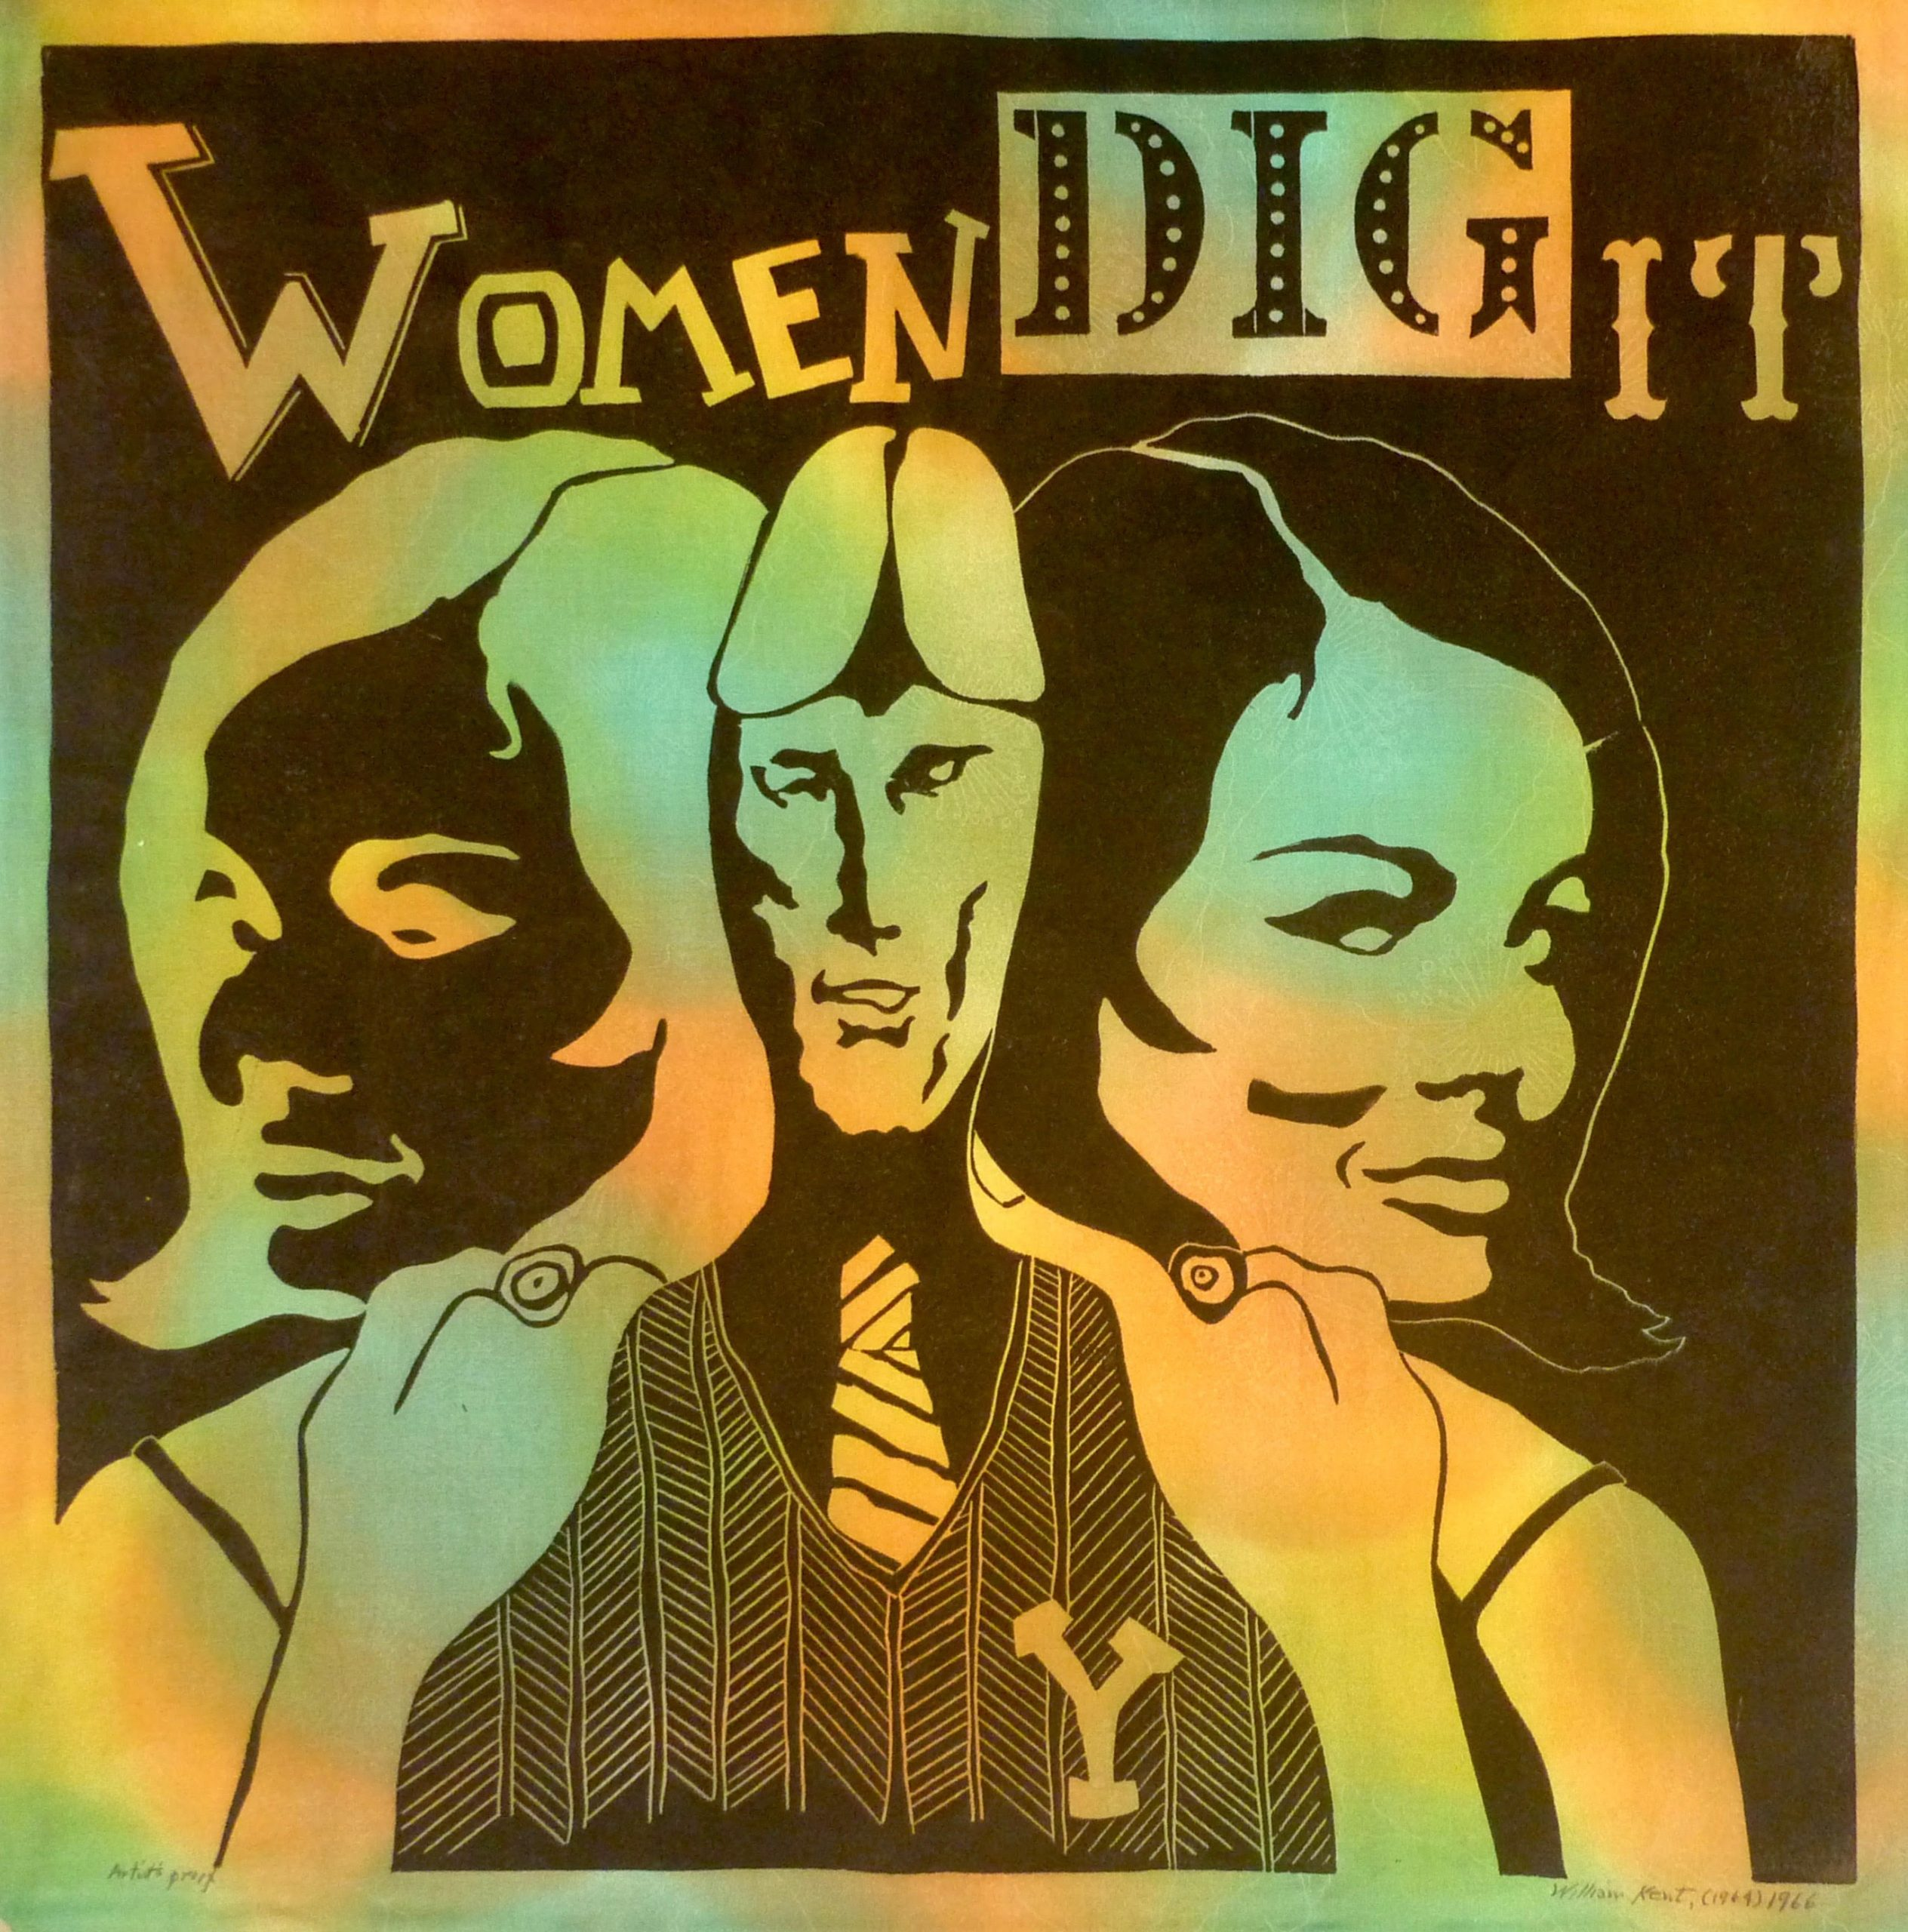 Women Dig It by William Kent